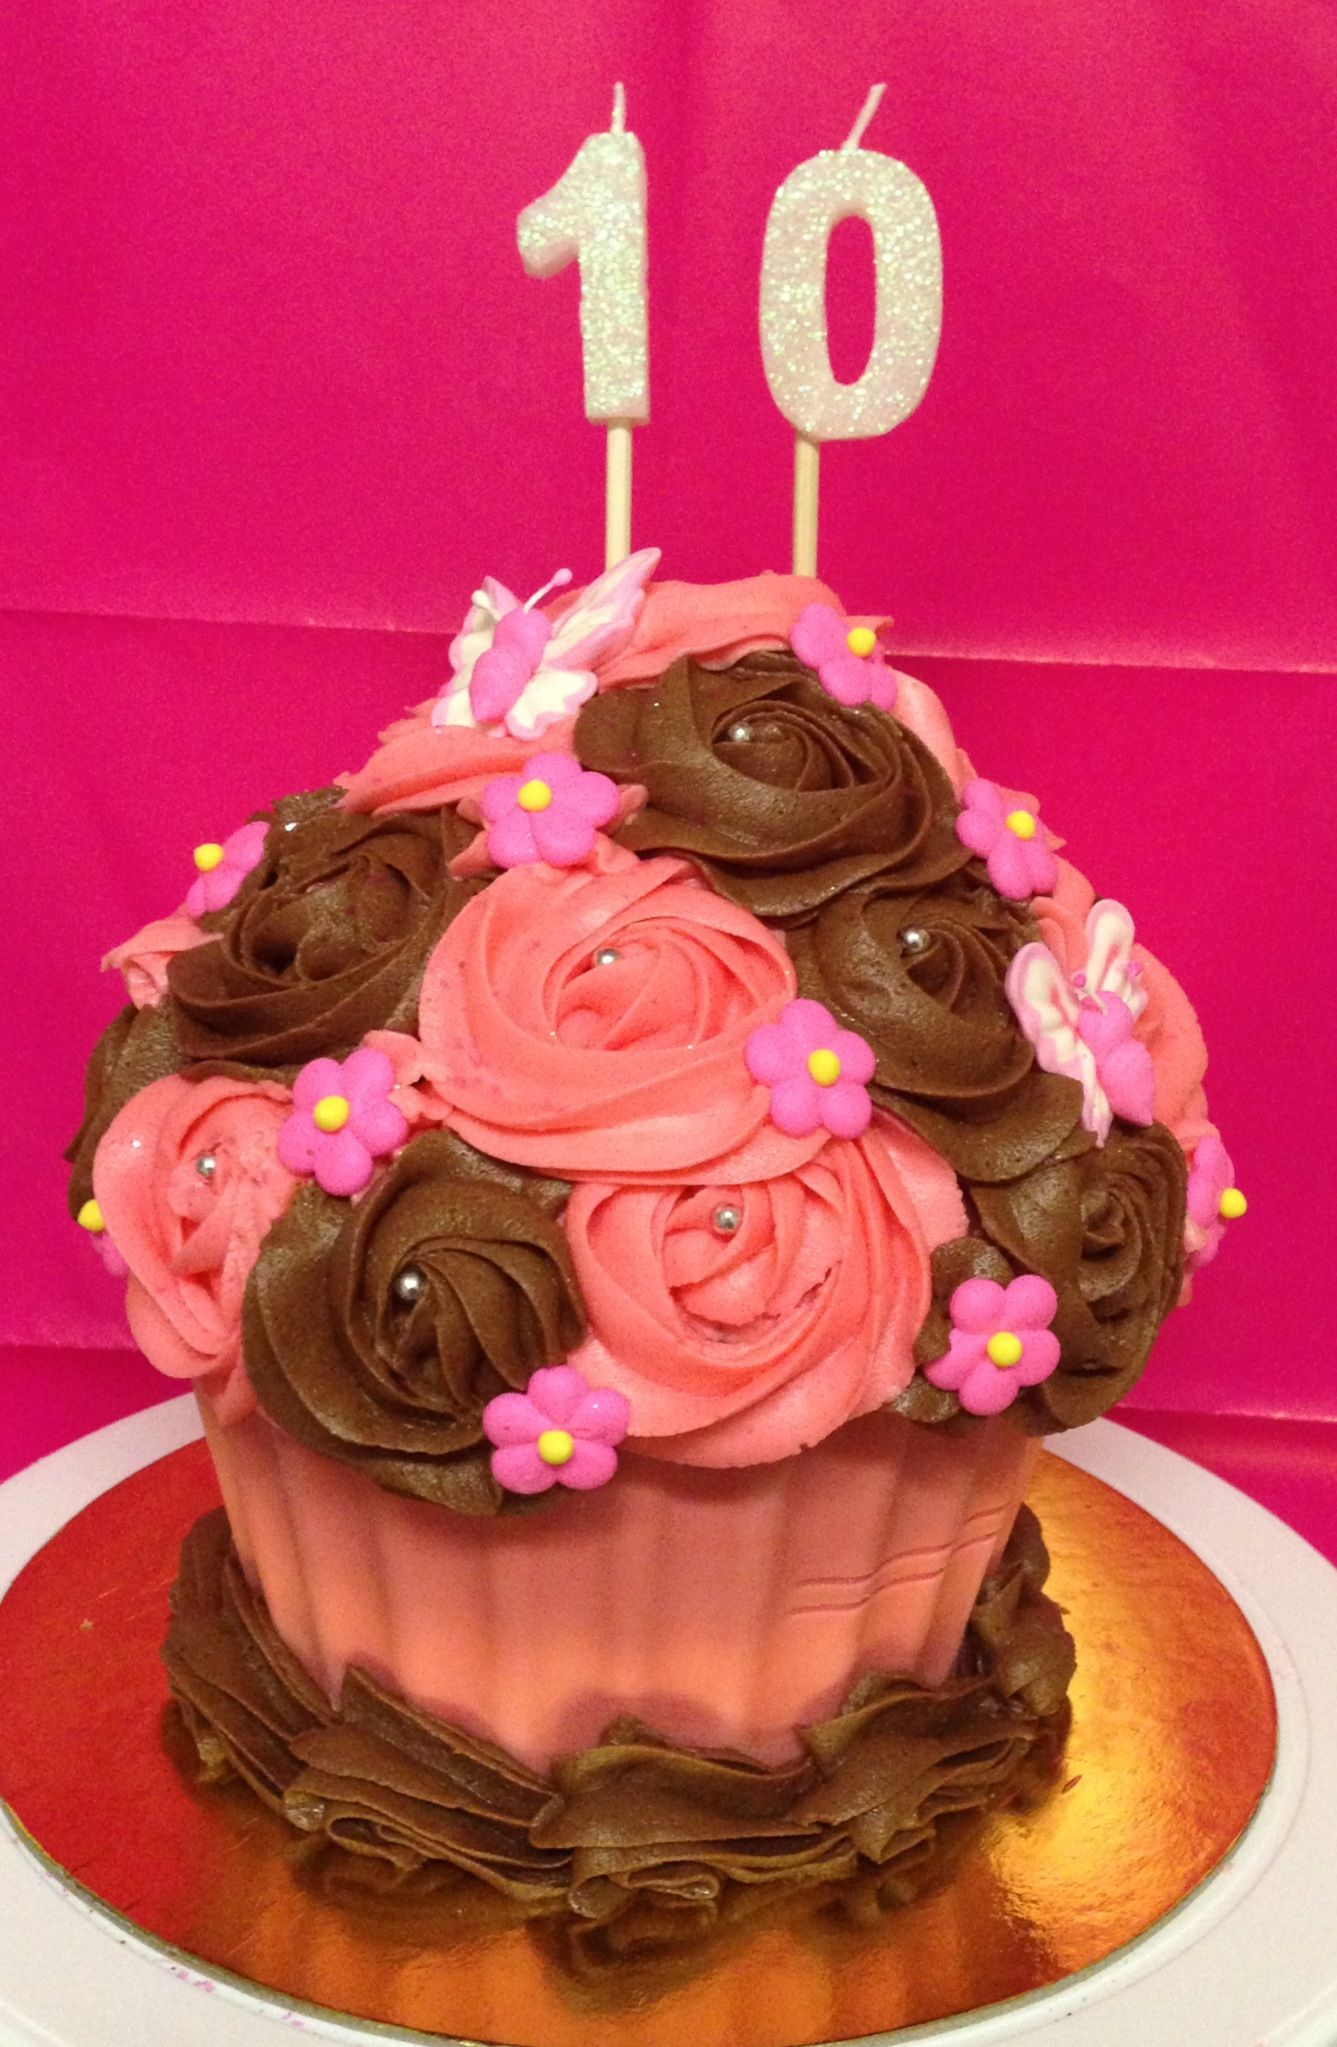 Pretty Giant Cupcake For A Special Little 10 Year Old Girl Girl Cakes Cupcake Birthday Cake Birthday Cake Kids